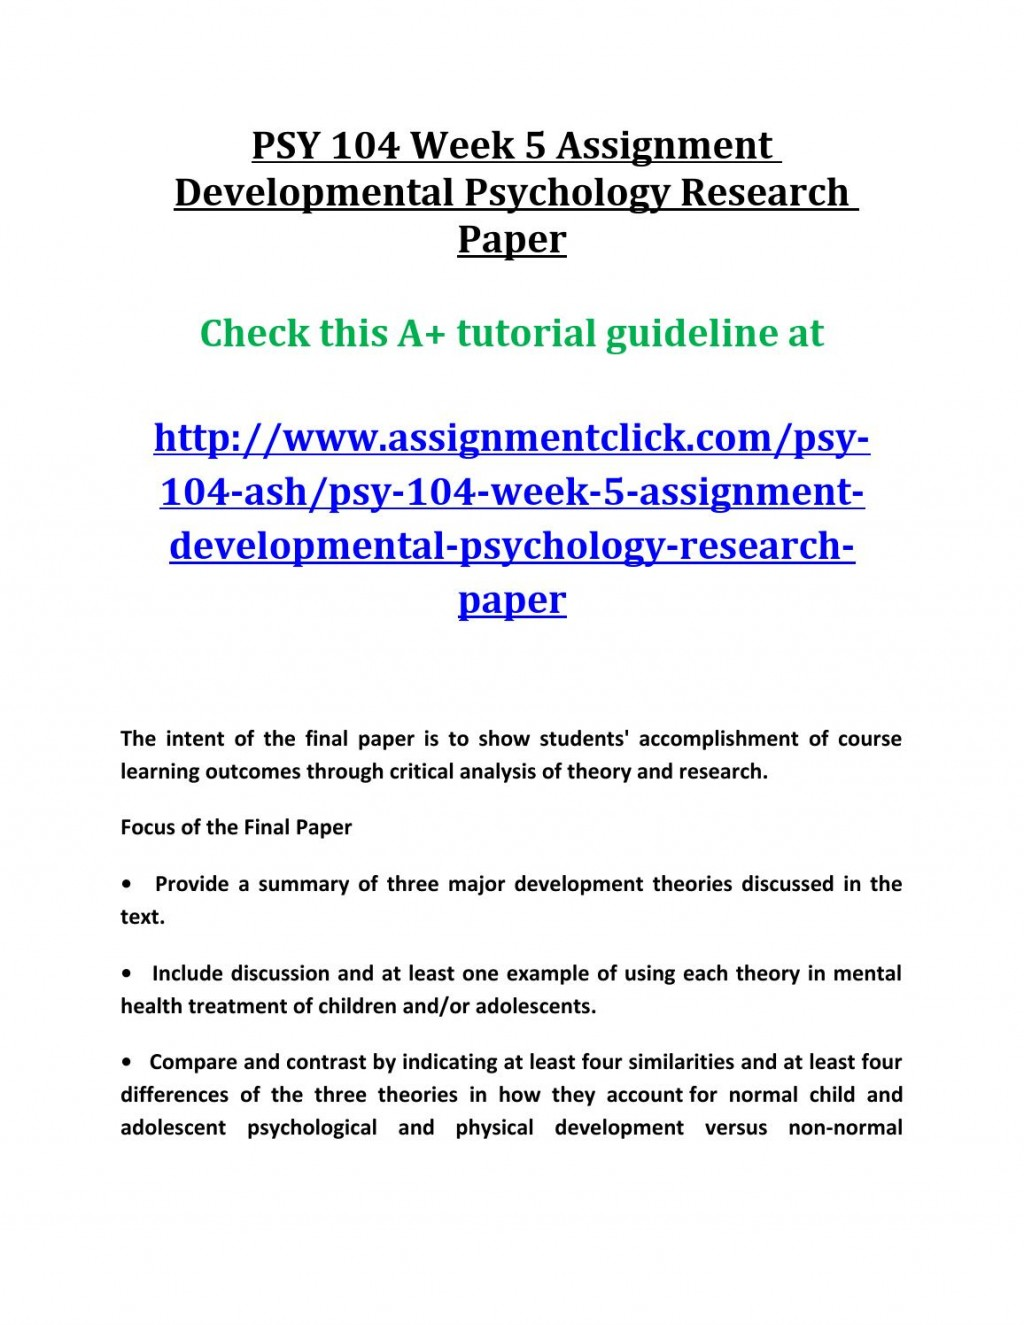 008 Developmental Psychology Research Paper Example Page 1 Sensational Sample Large